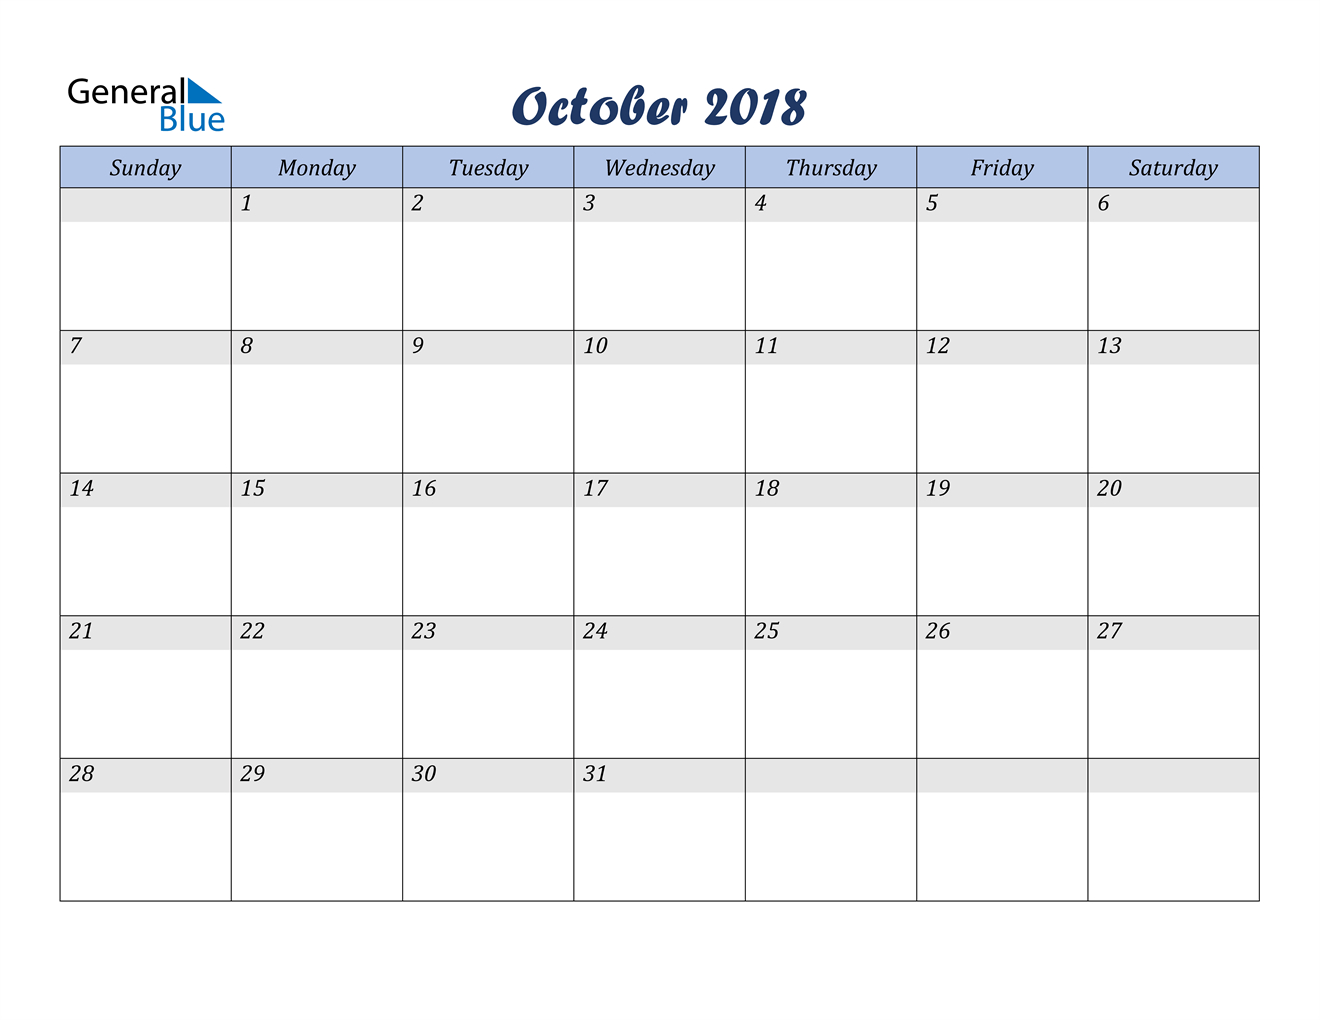 Image of October 2018 Italicized and Cool Blue, A Fun Calendar in PDF, Word and Excel Calendar